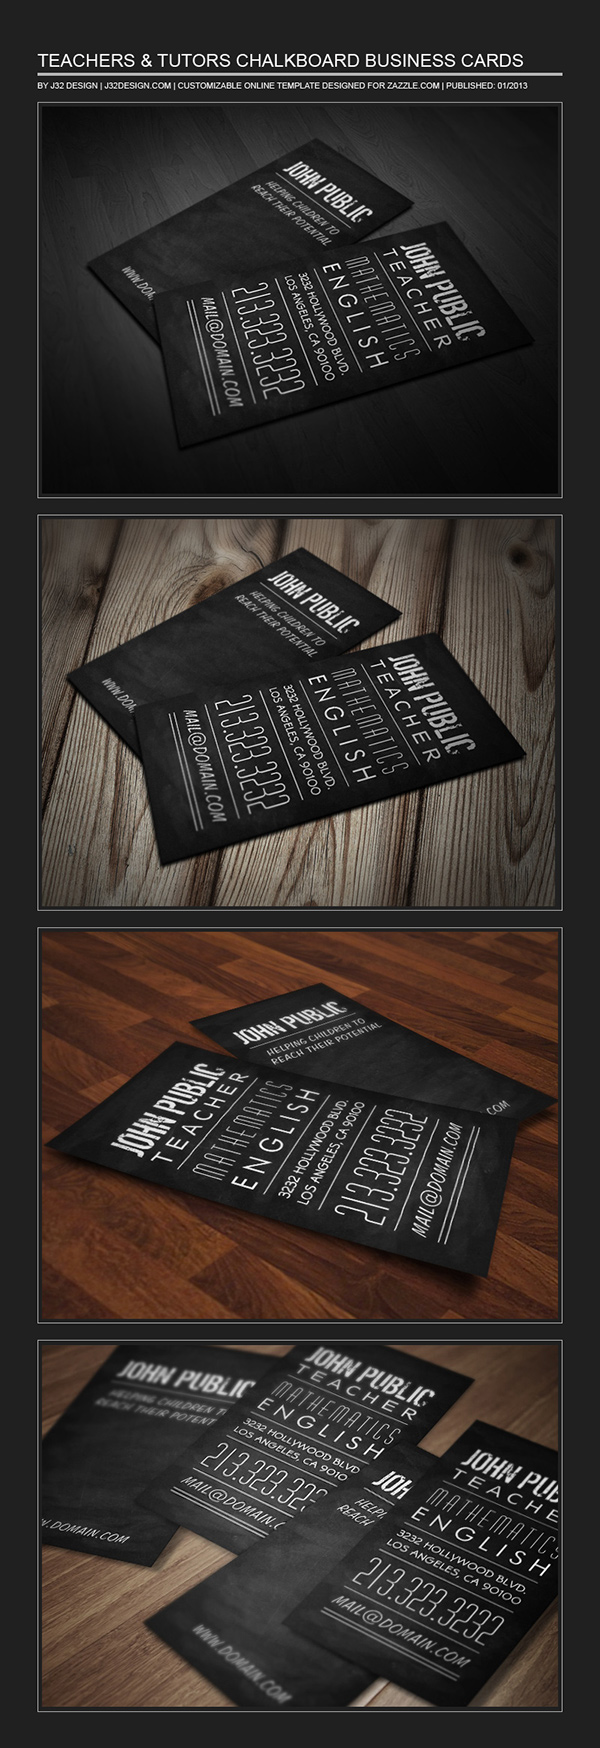 Teachers tutors chalkboard business card on behance name teacher tutor chalkboard business card business card info vertical 2x35 2 sided font dirty ego geometric book huxley vertical futura book colourmoves